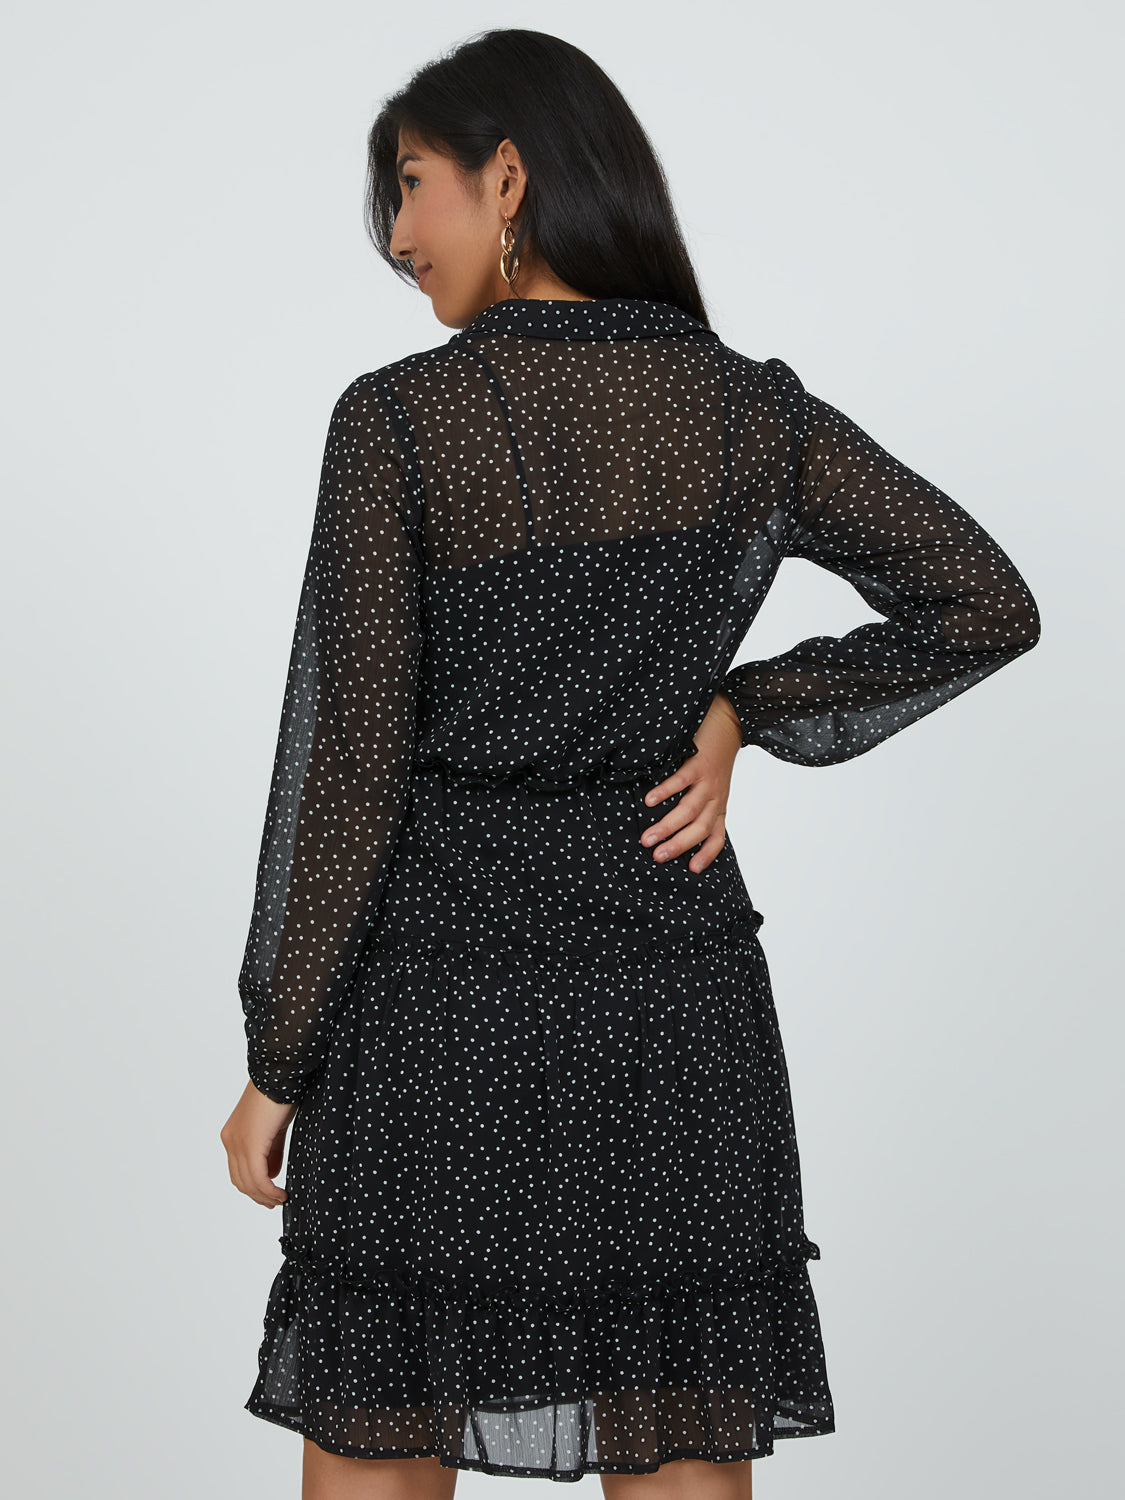 Sweet Spots Mini Shirt Dress